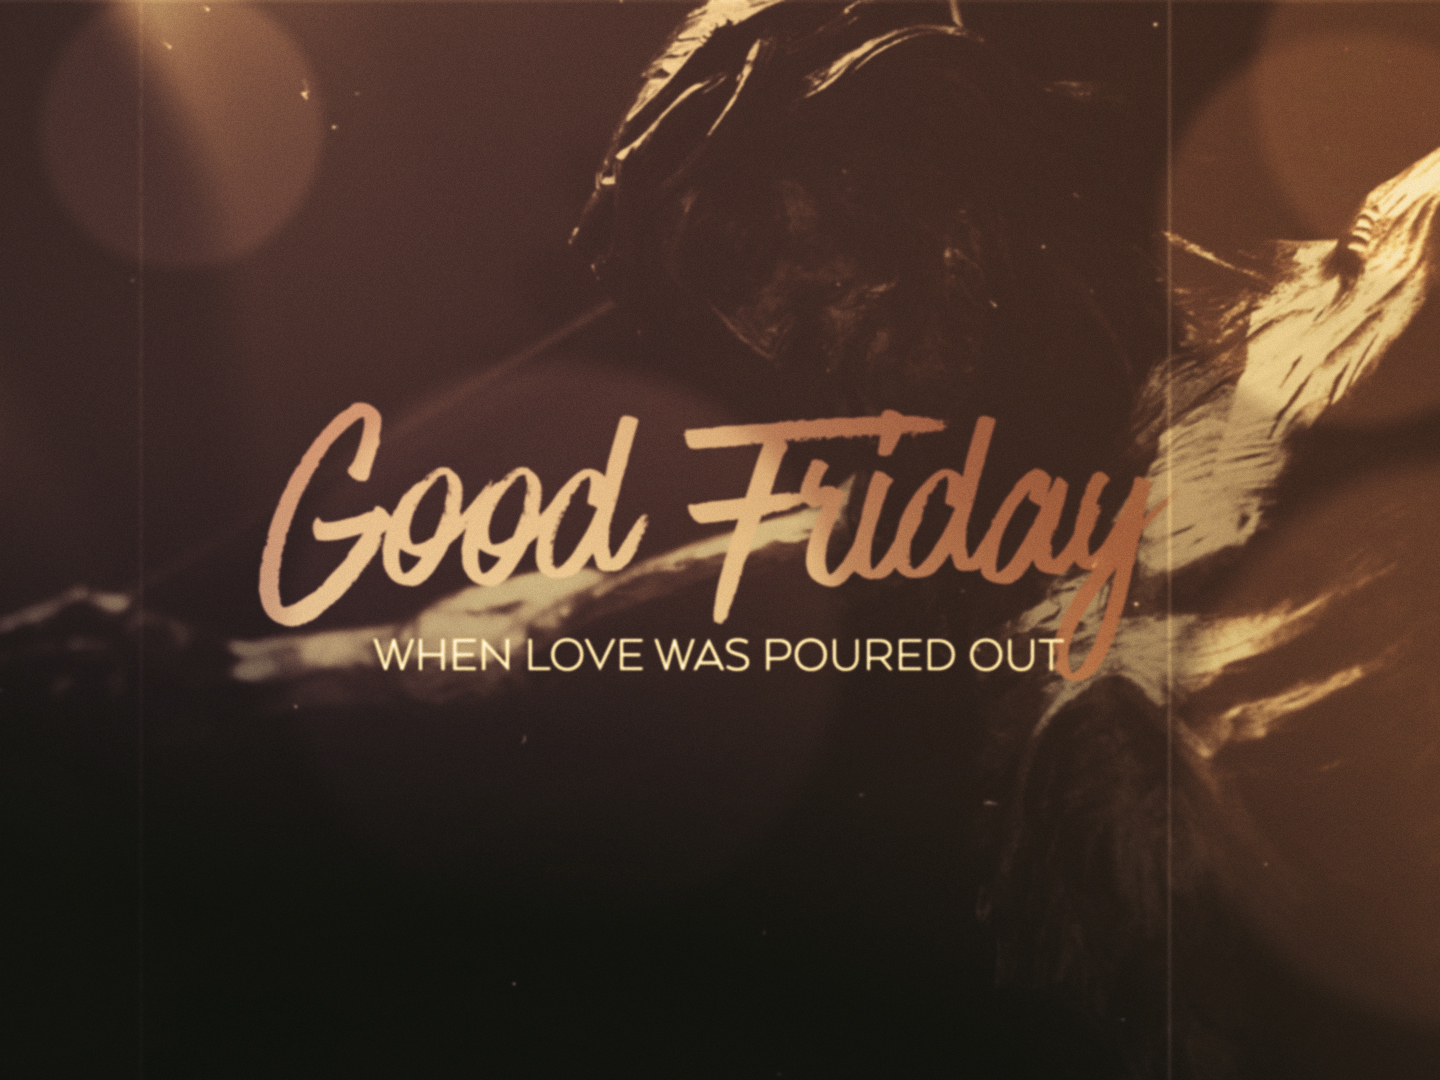 FRIDAY WORDS GOOD FRIDAY